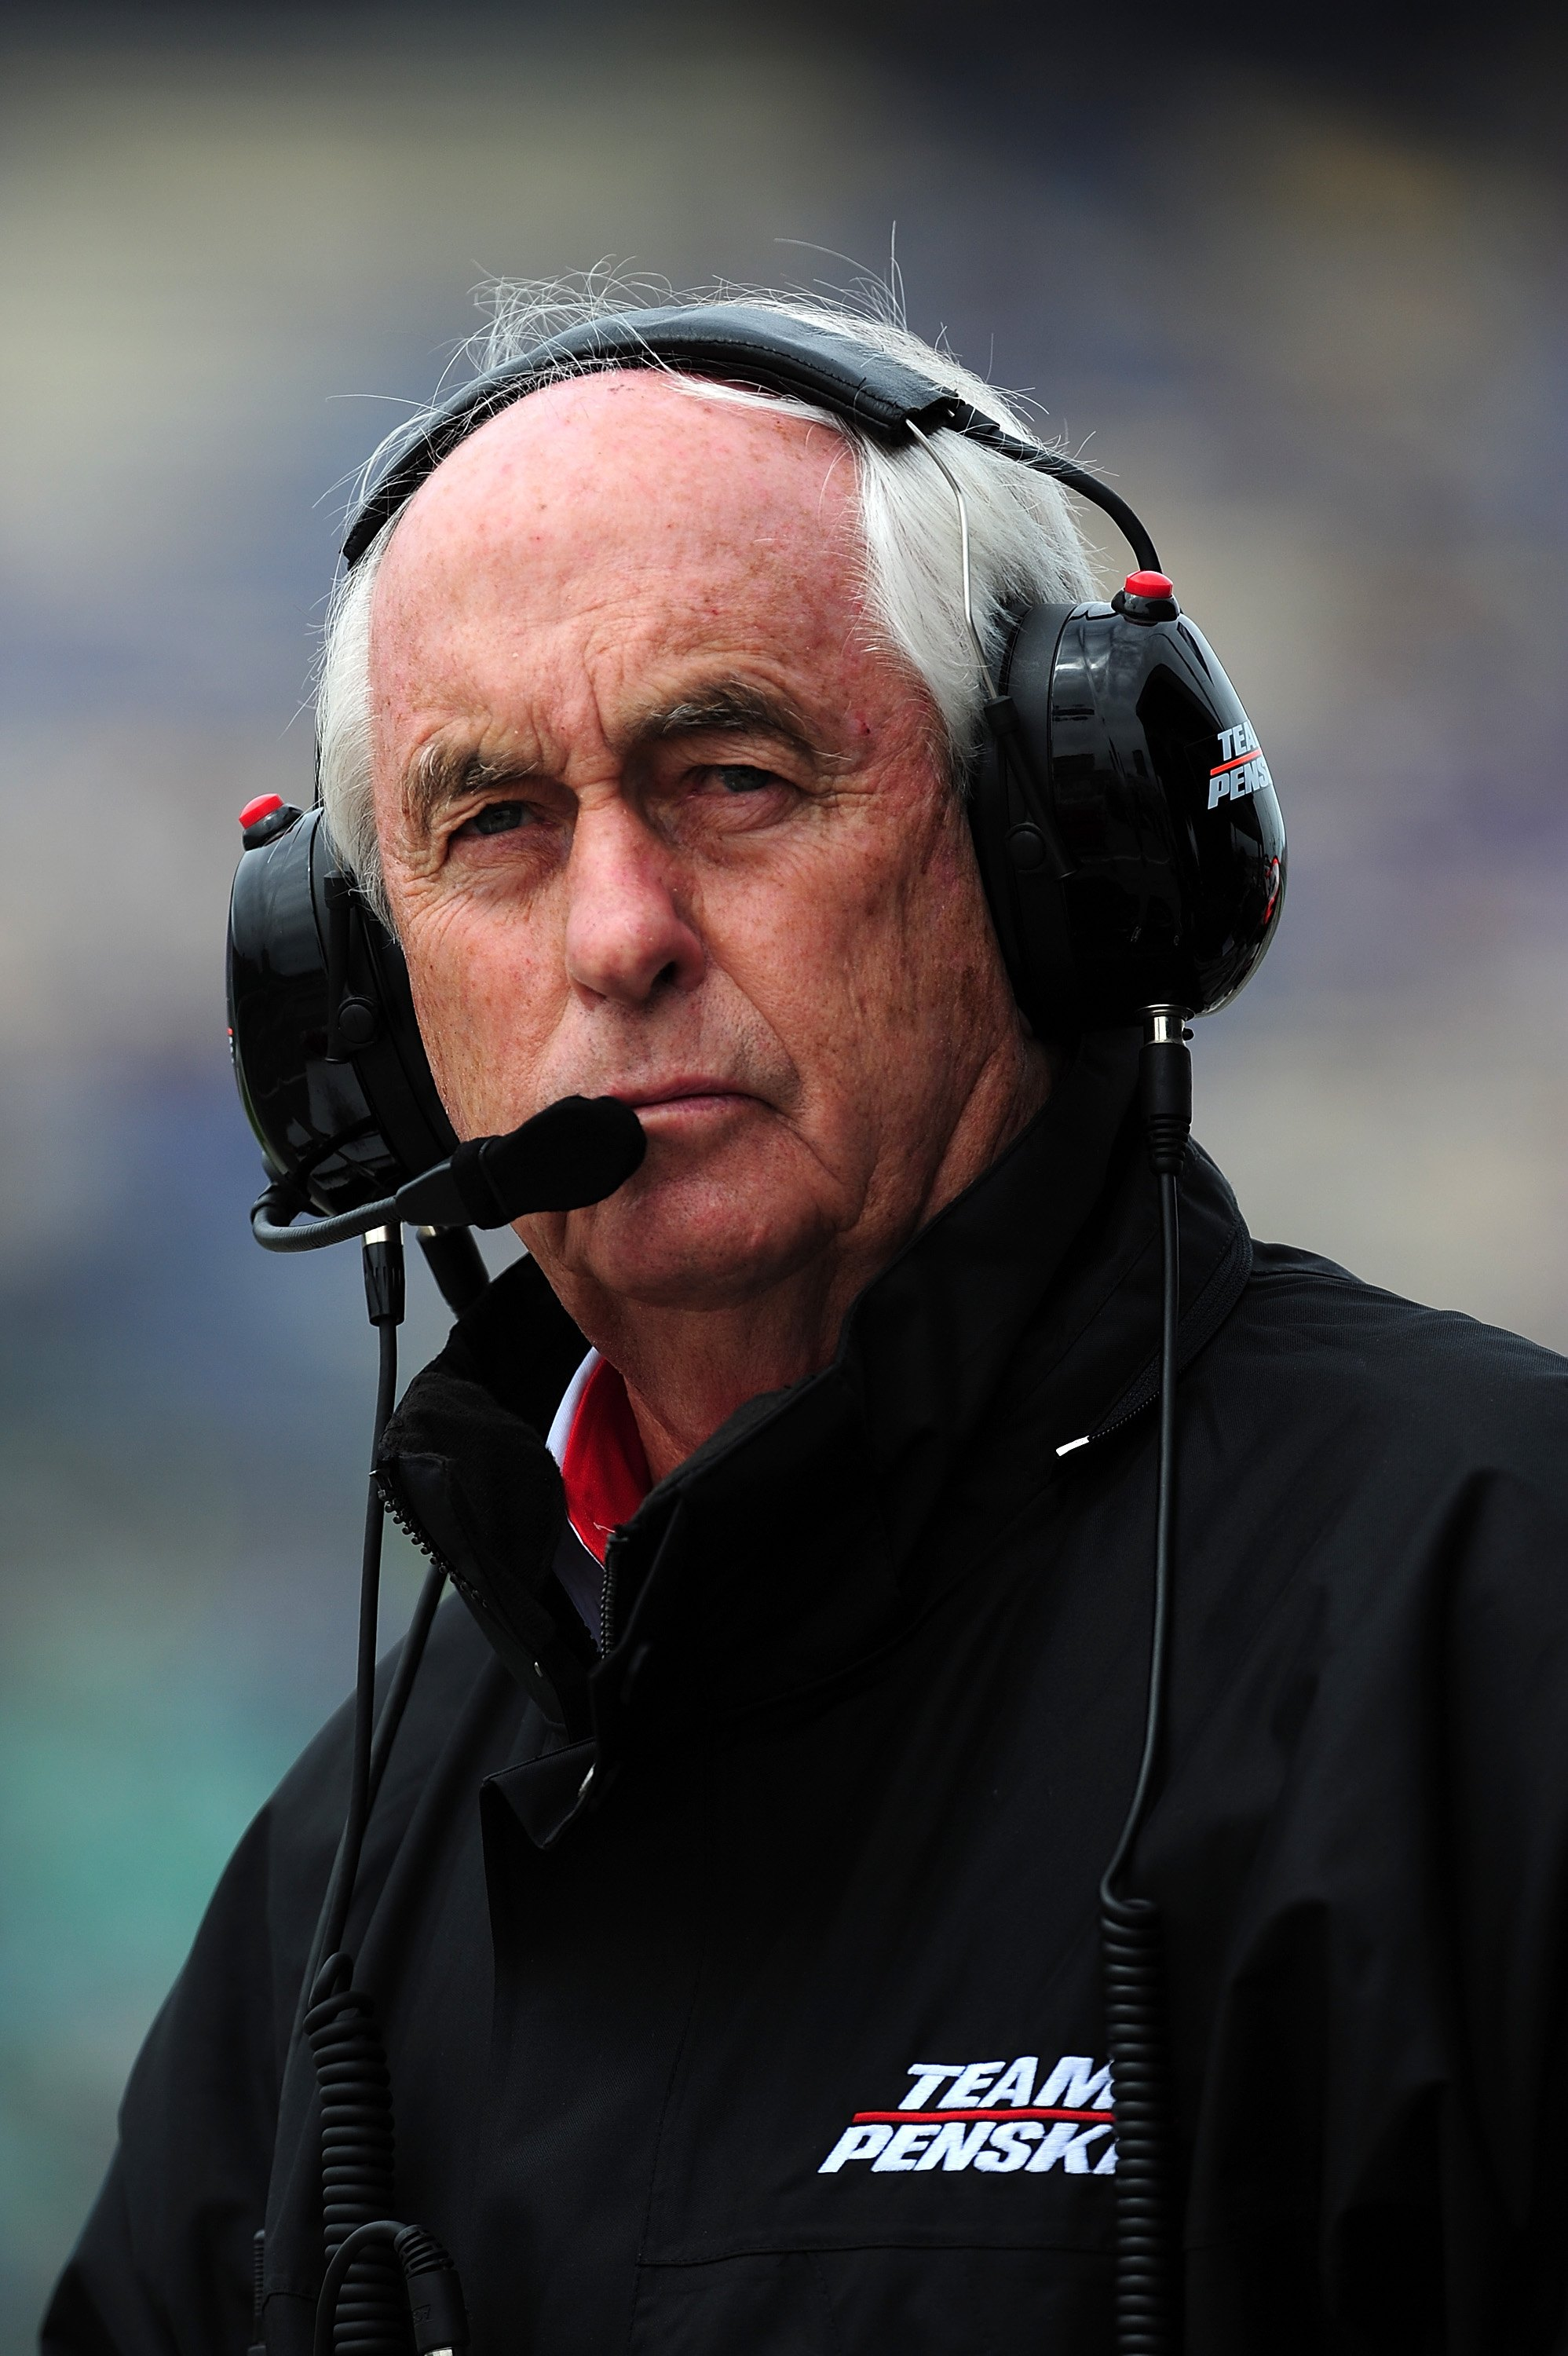 KANSAS CITY, KS - MAY 01:  Roger Penske, team owner of Team Penske, during the Indy Car Series Road Runner Turbo Indy 300 at Kansas Speedway on May 1,  2010 in Kansas City, Kansas  (Photo by Rick Dole/Getty Images)